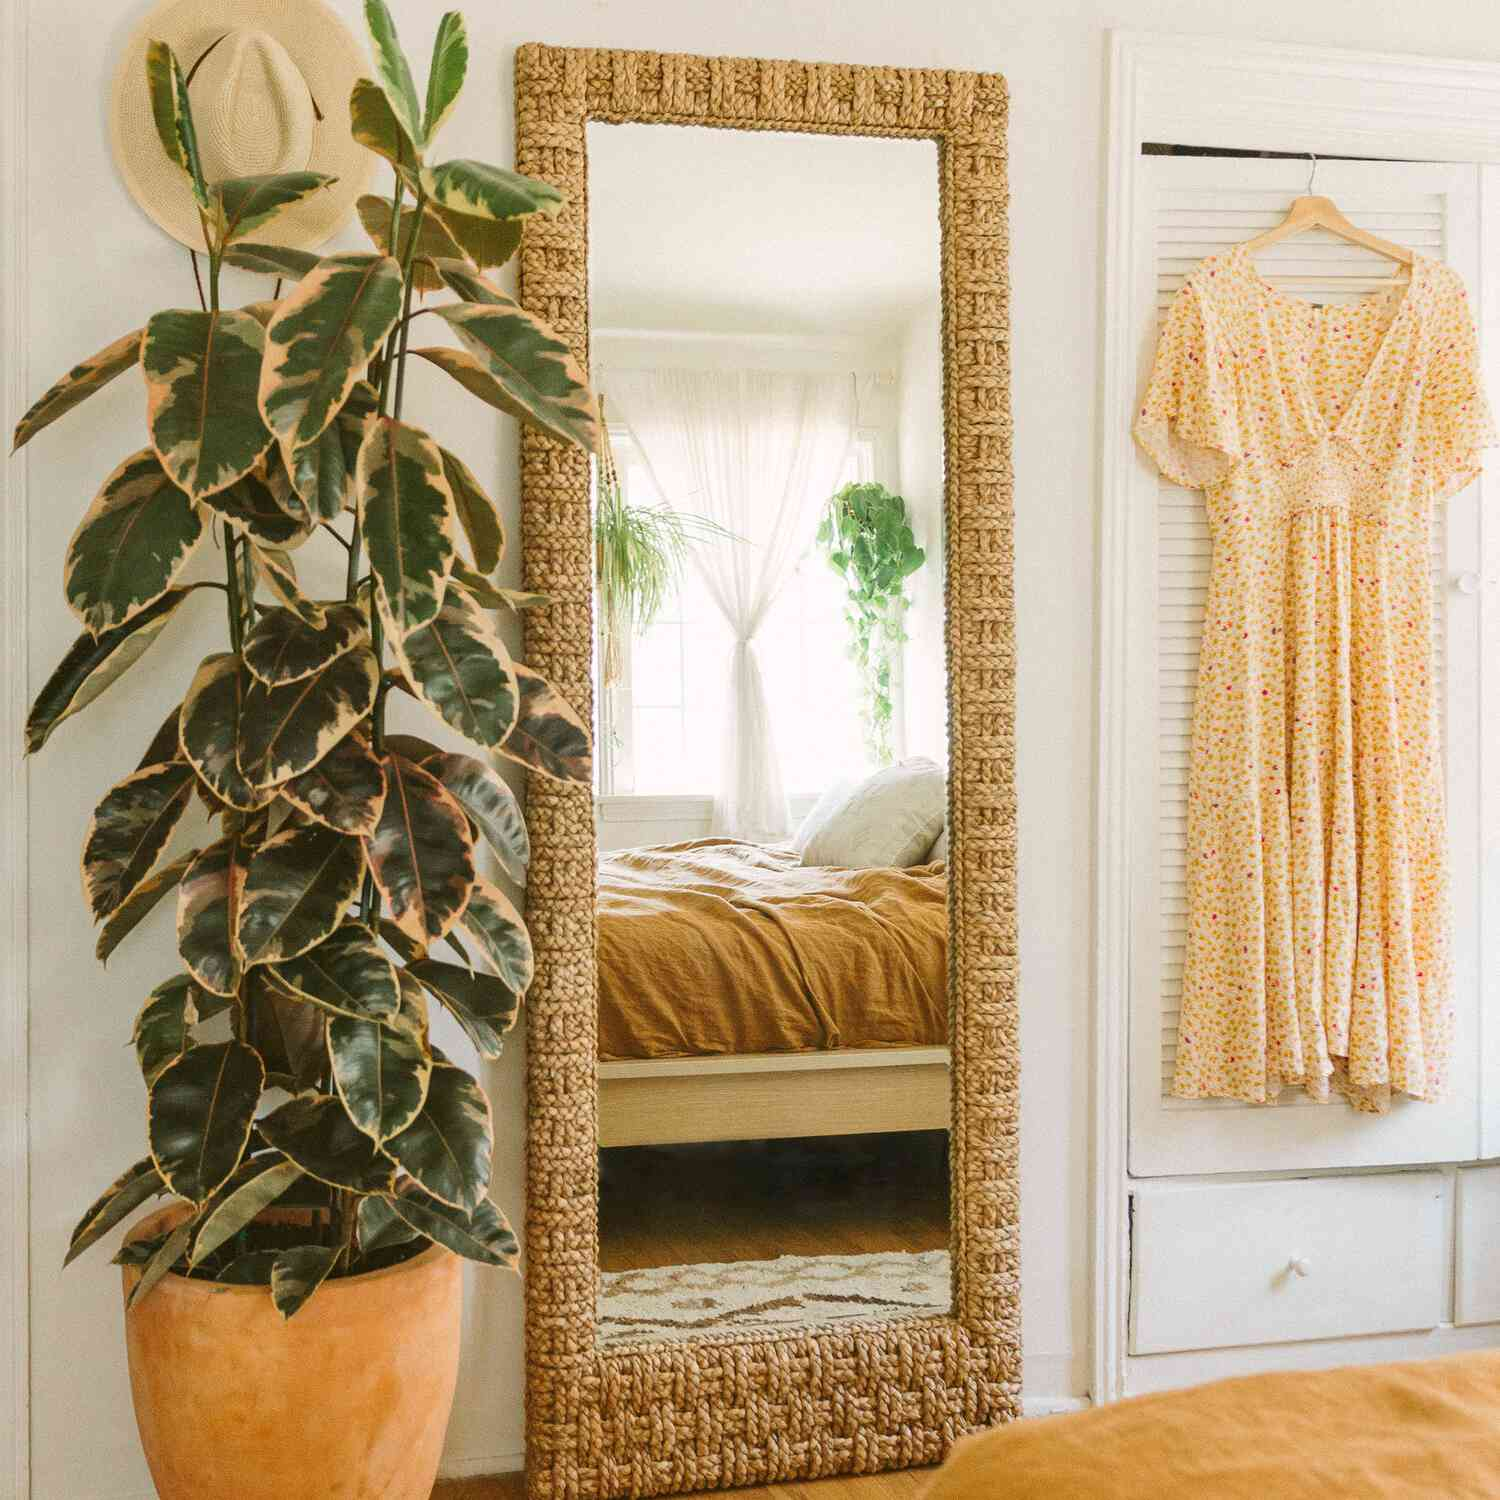 Tall rubber tree next to a standing mirror in a boho bedroom